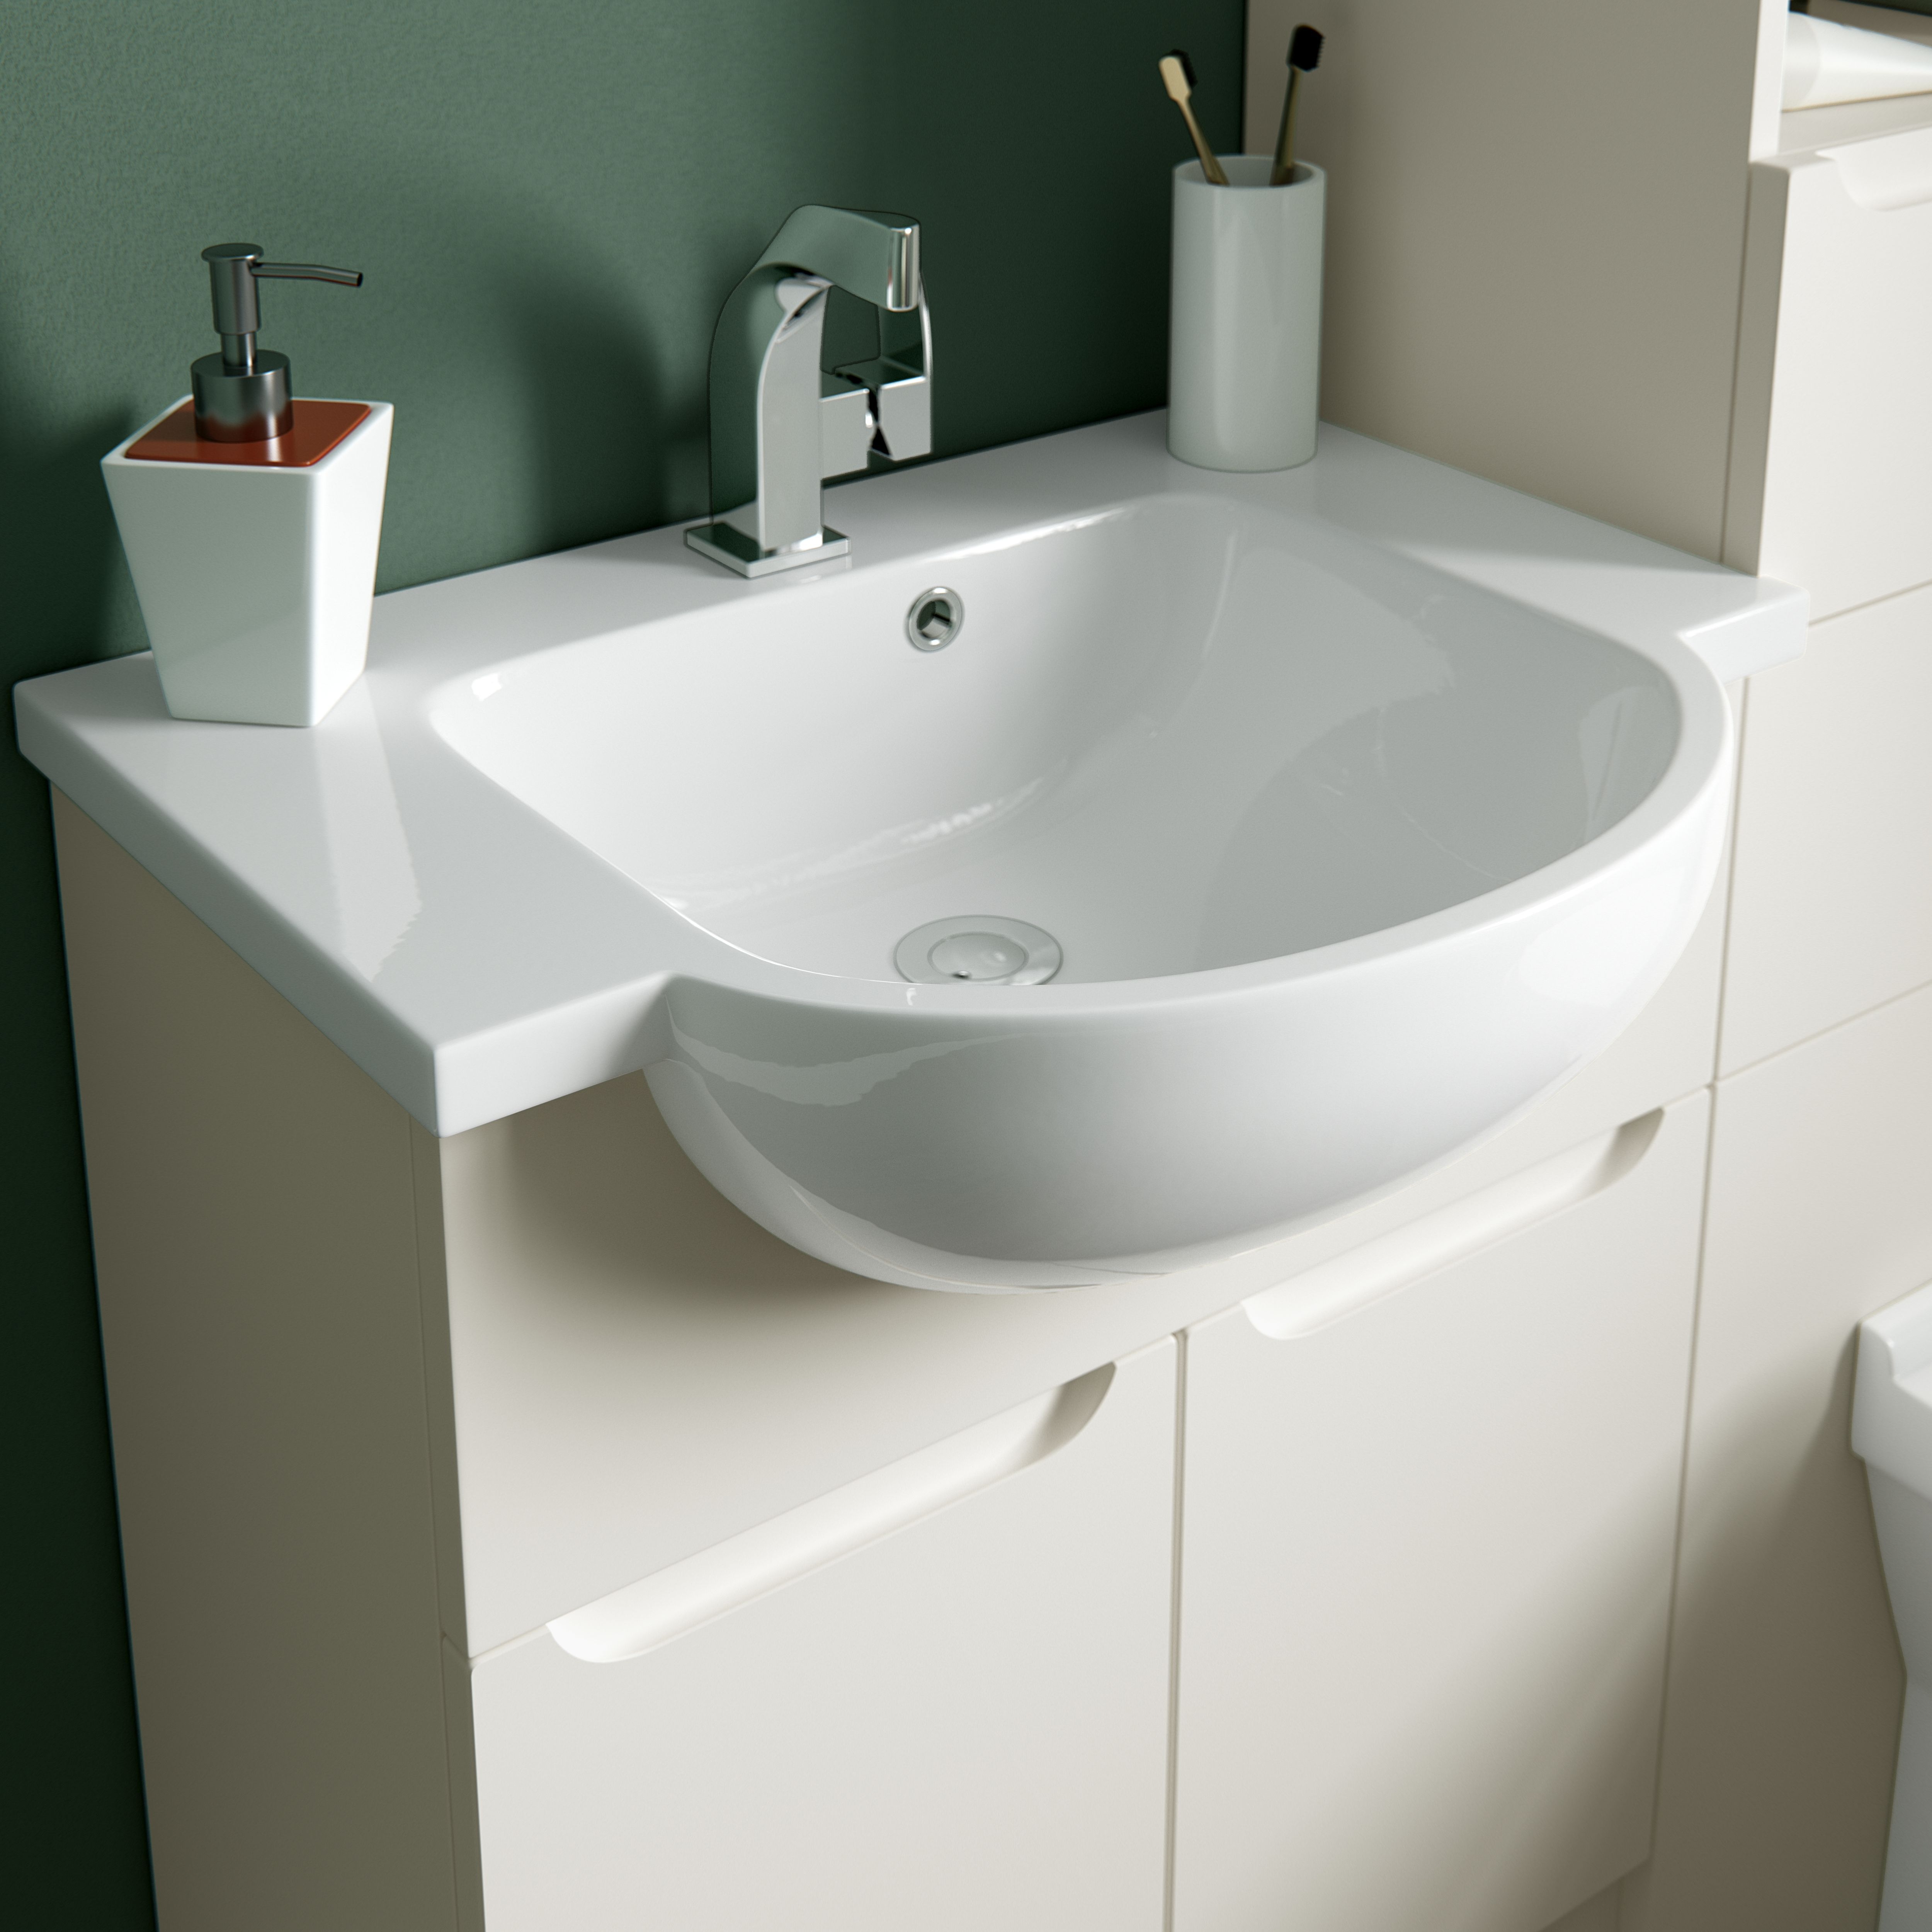 Arco semirecess round basin fitted bathrooms pinterest fitted